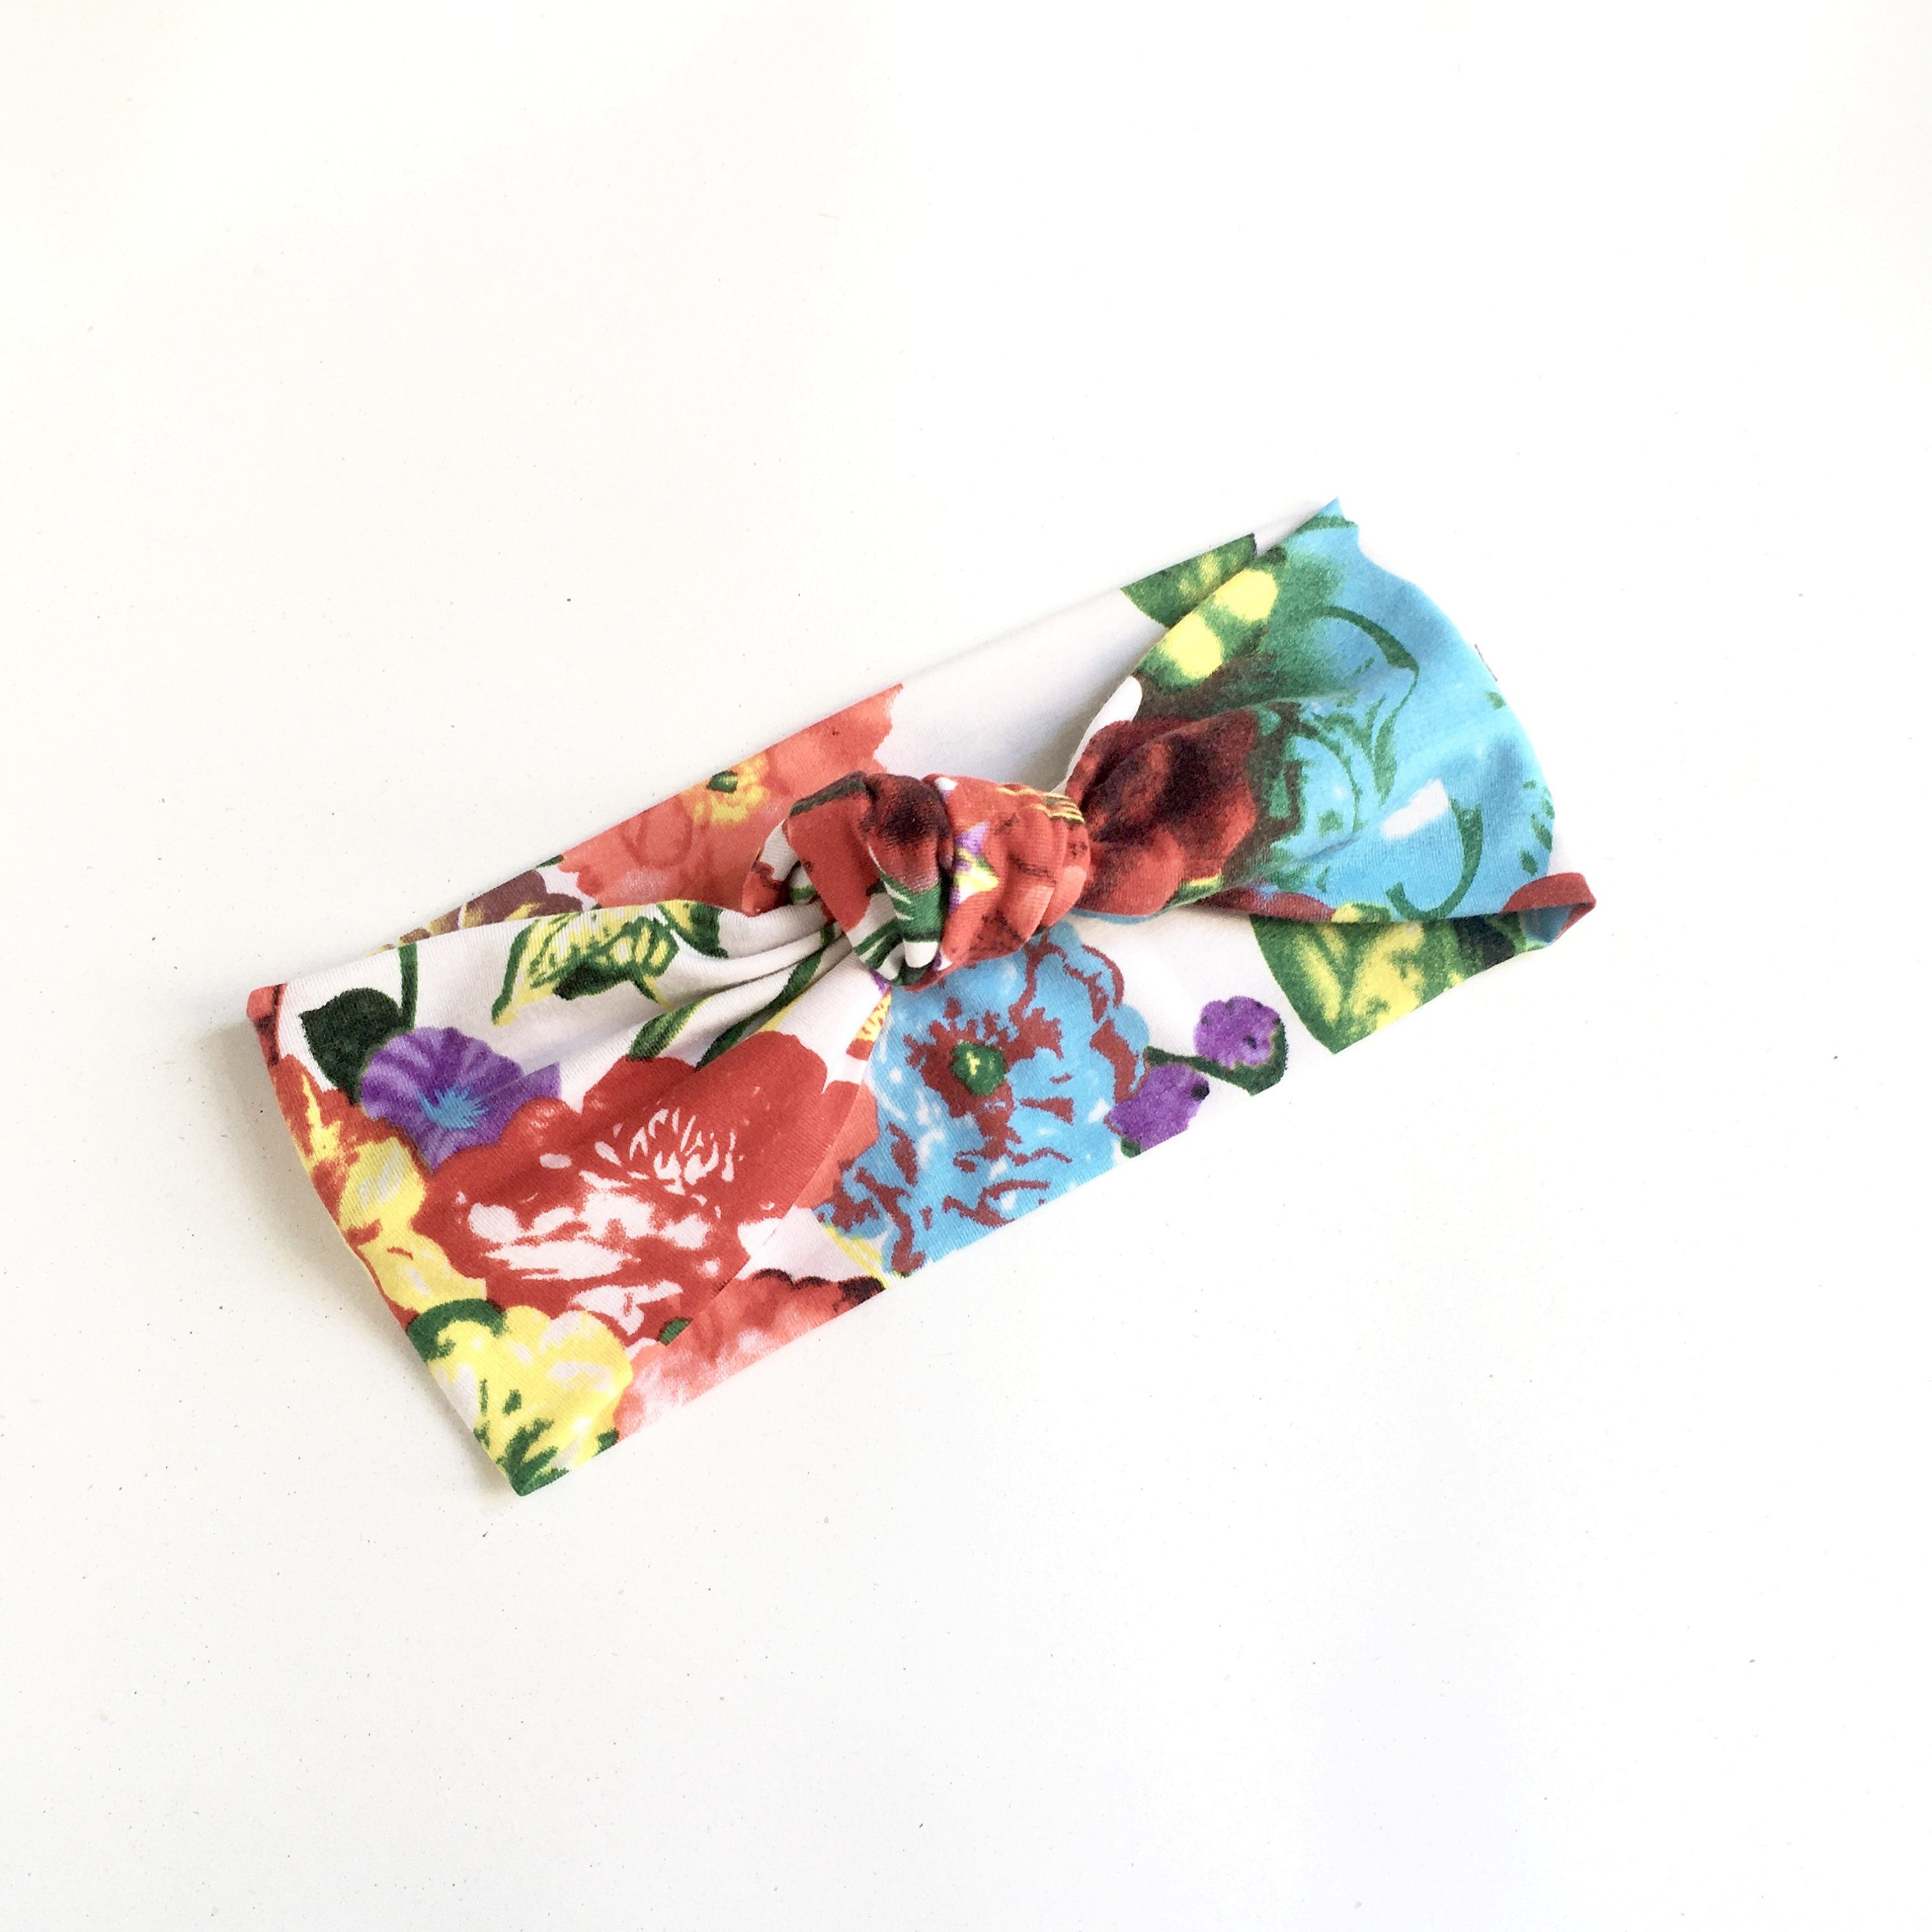 Knotted Headband for Women, Colorful Headband, Top Knot Headband, Floral Headband, Turban Headband, Jersey Hair Band, Summer Headband